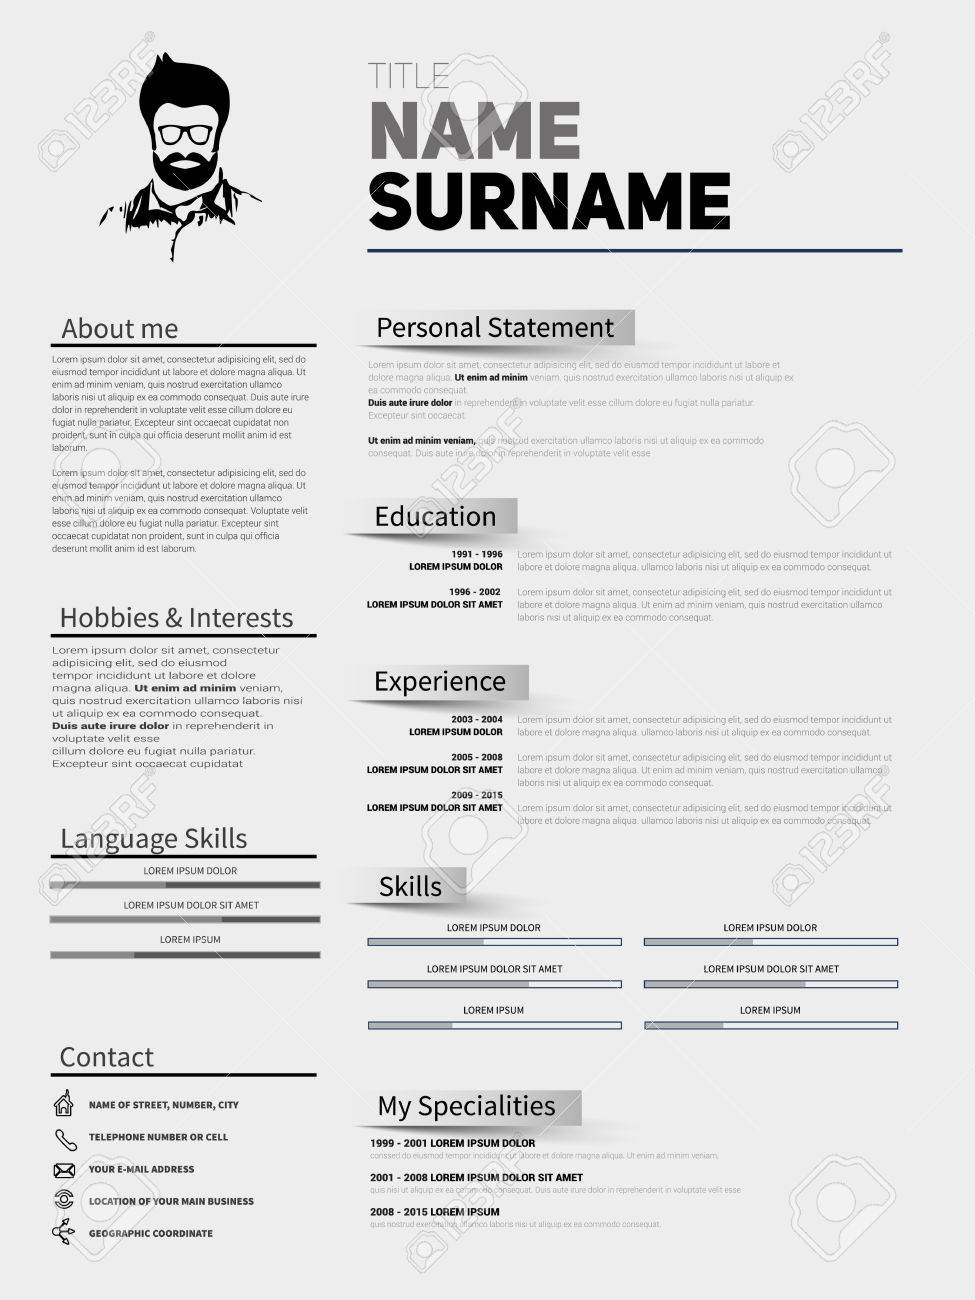 Resume Minimalist Cv Resume Template With Simple Design Company Application Cv Curriculum Vitae Resume Business Sheet